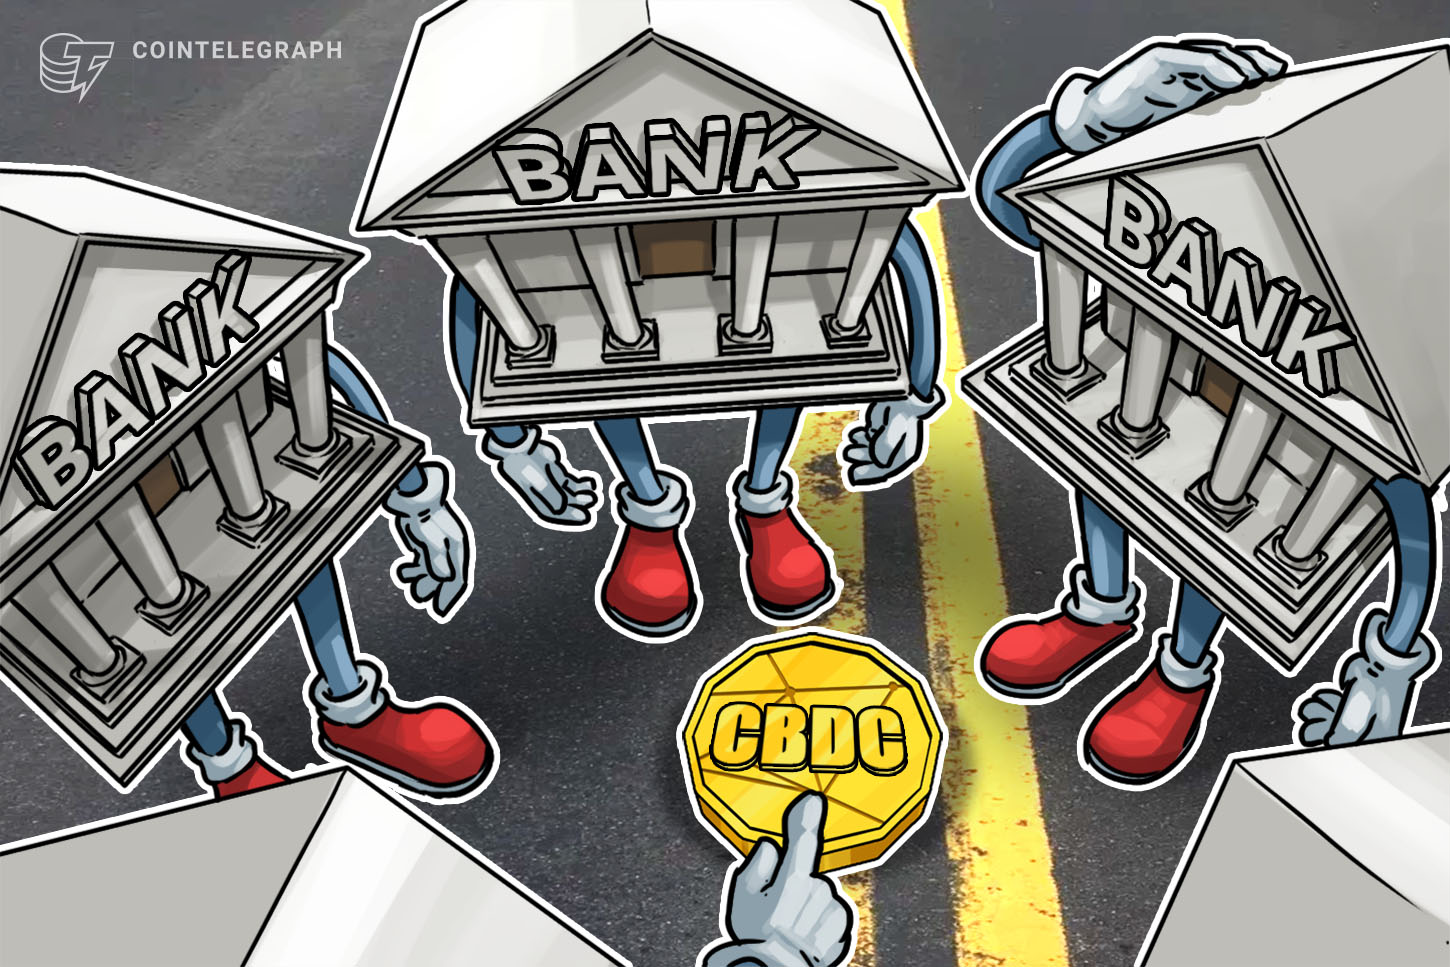 New Zealand's Reserve Bank consulting public on a potential CBDC